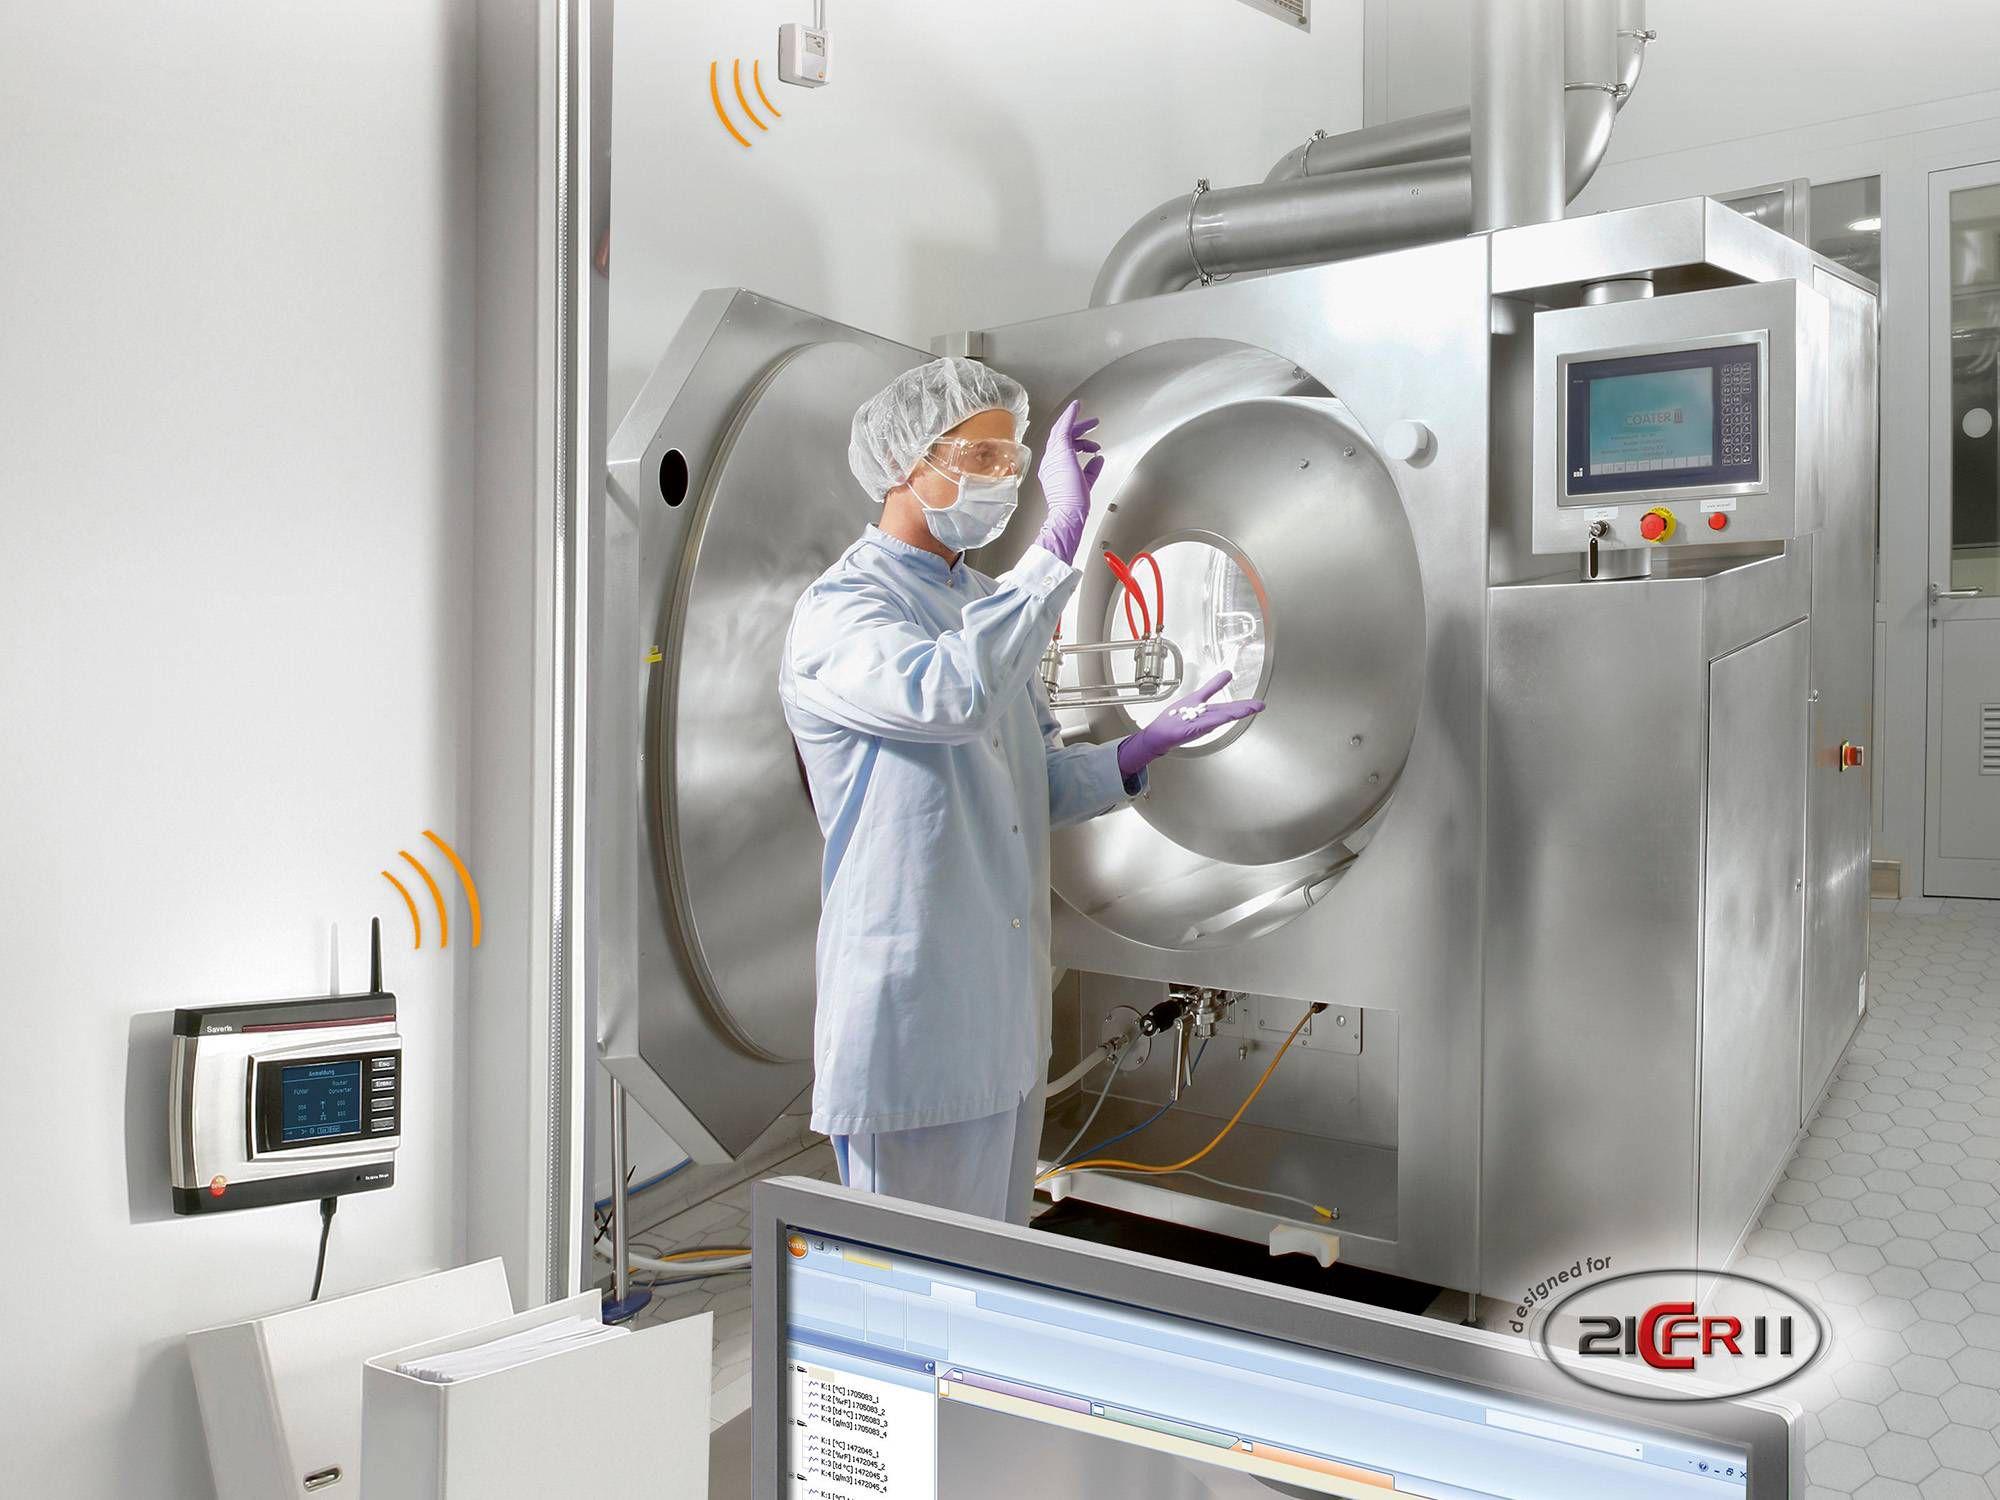 Data monitoring system Saveris in the pharmaceutical industry